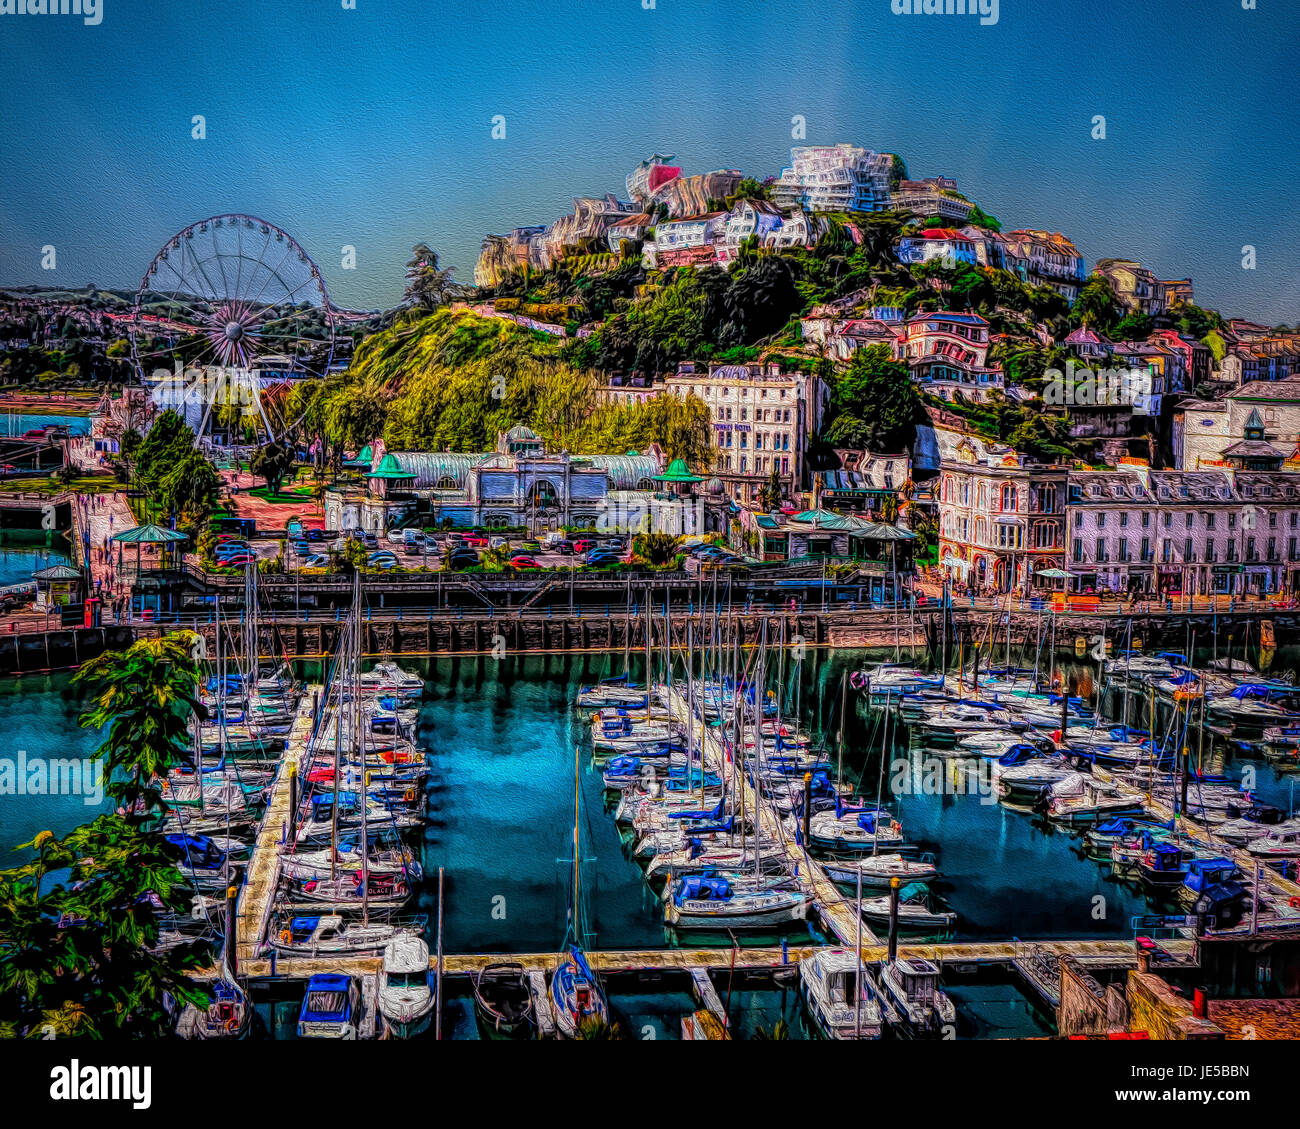 DIGITAL ART: Torquay Harbour, Devon, Great Britain - Stock Image